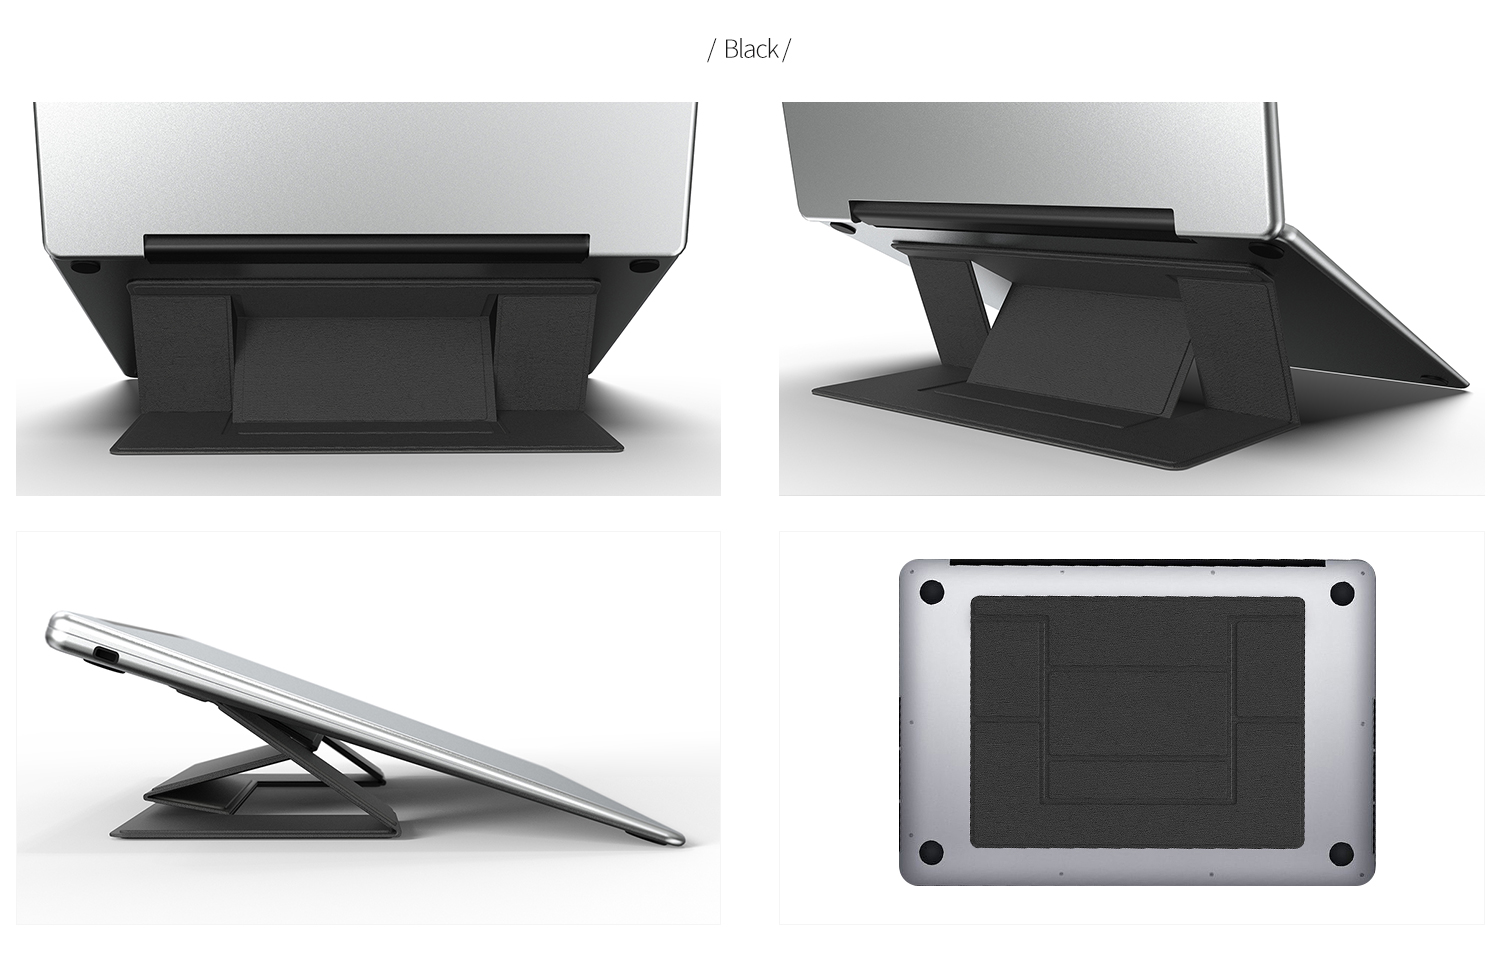 Universal Portable Invisible Adjustable Laptop Stand For Notebook Laptop Macbook Surface